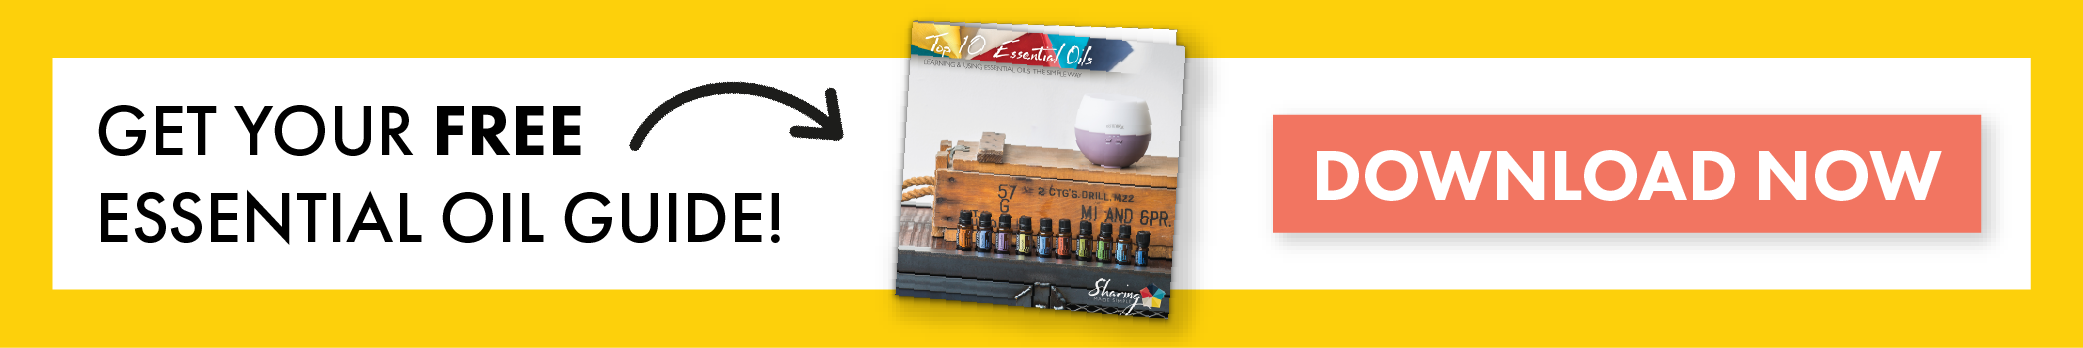 Get Your Free doTERRA Essential Oil Guide Freebie